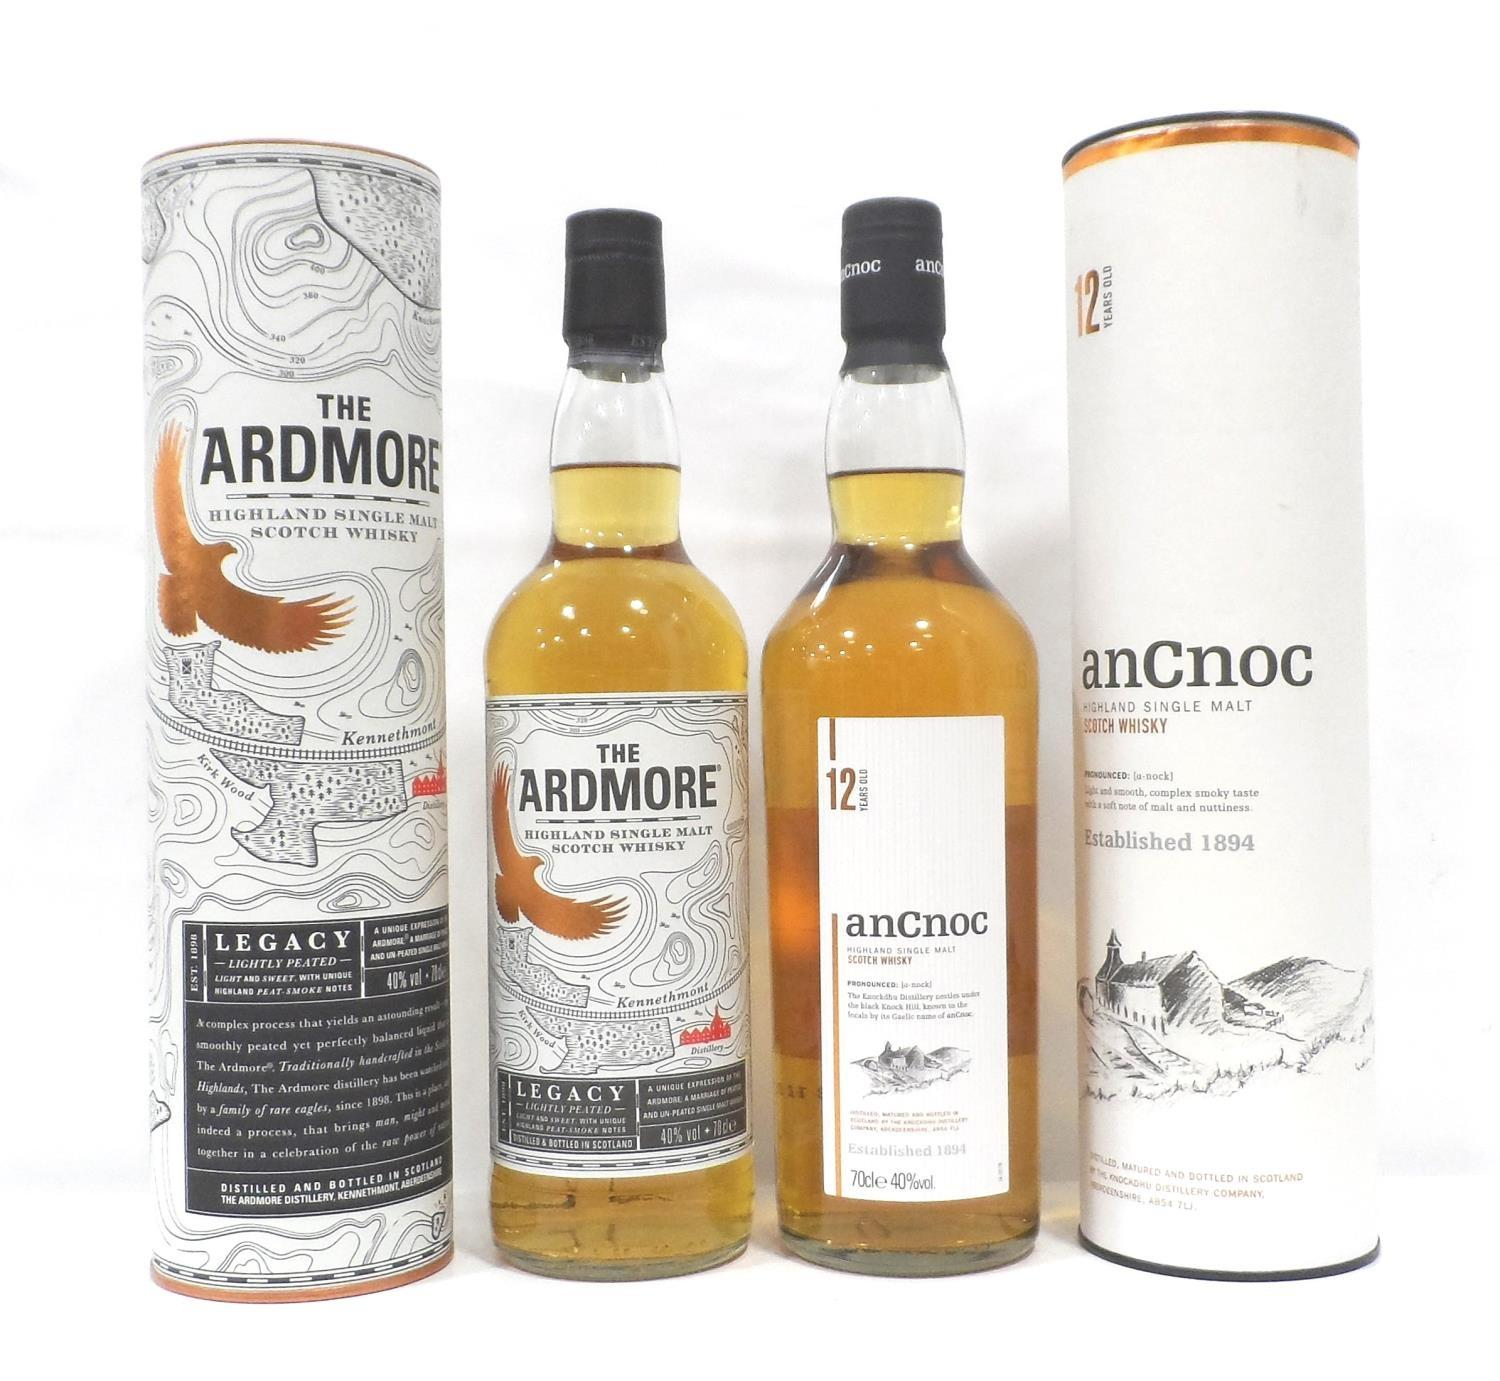 Lot 7 - TWO BOTTLES OF HIGHLAND MALT A pair of bottles of Highland Whisky, comprising: one bottle AN CNOC 12